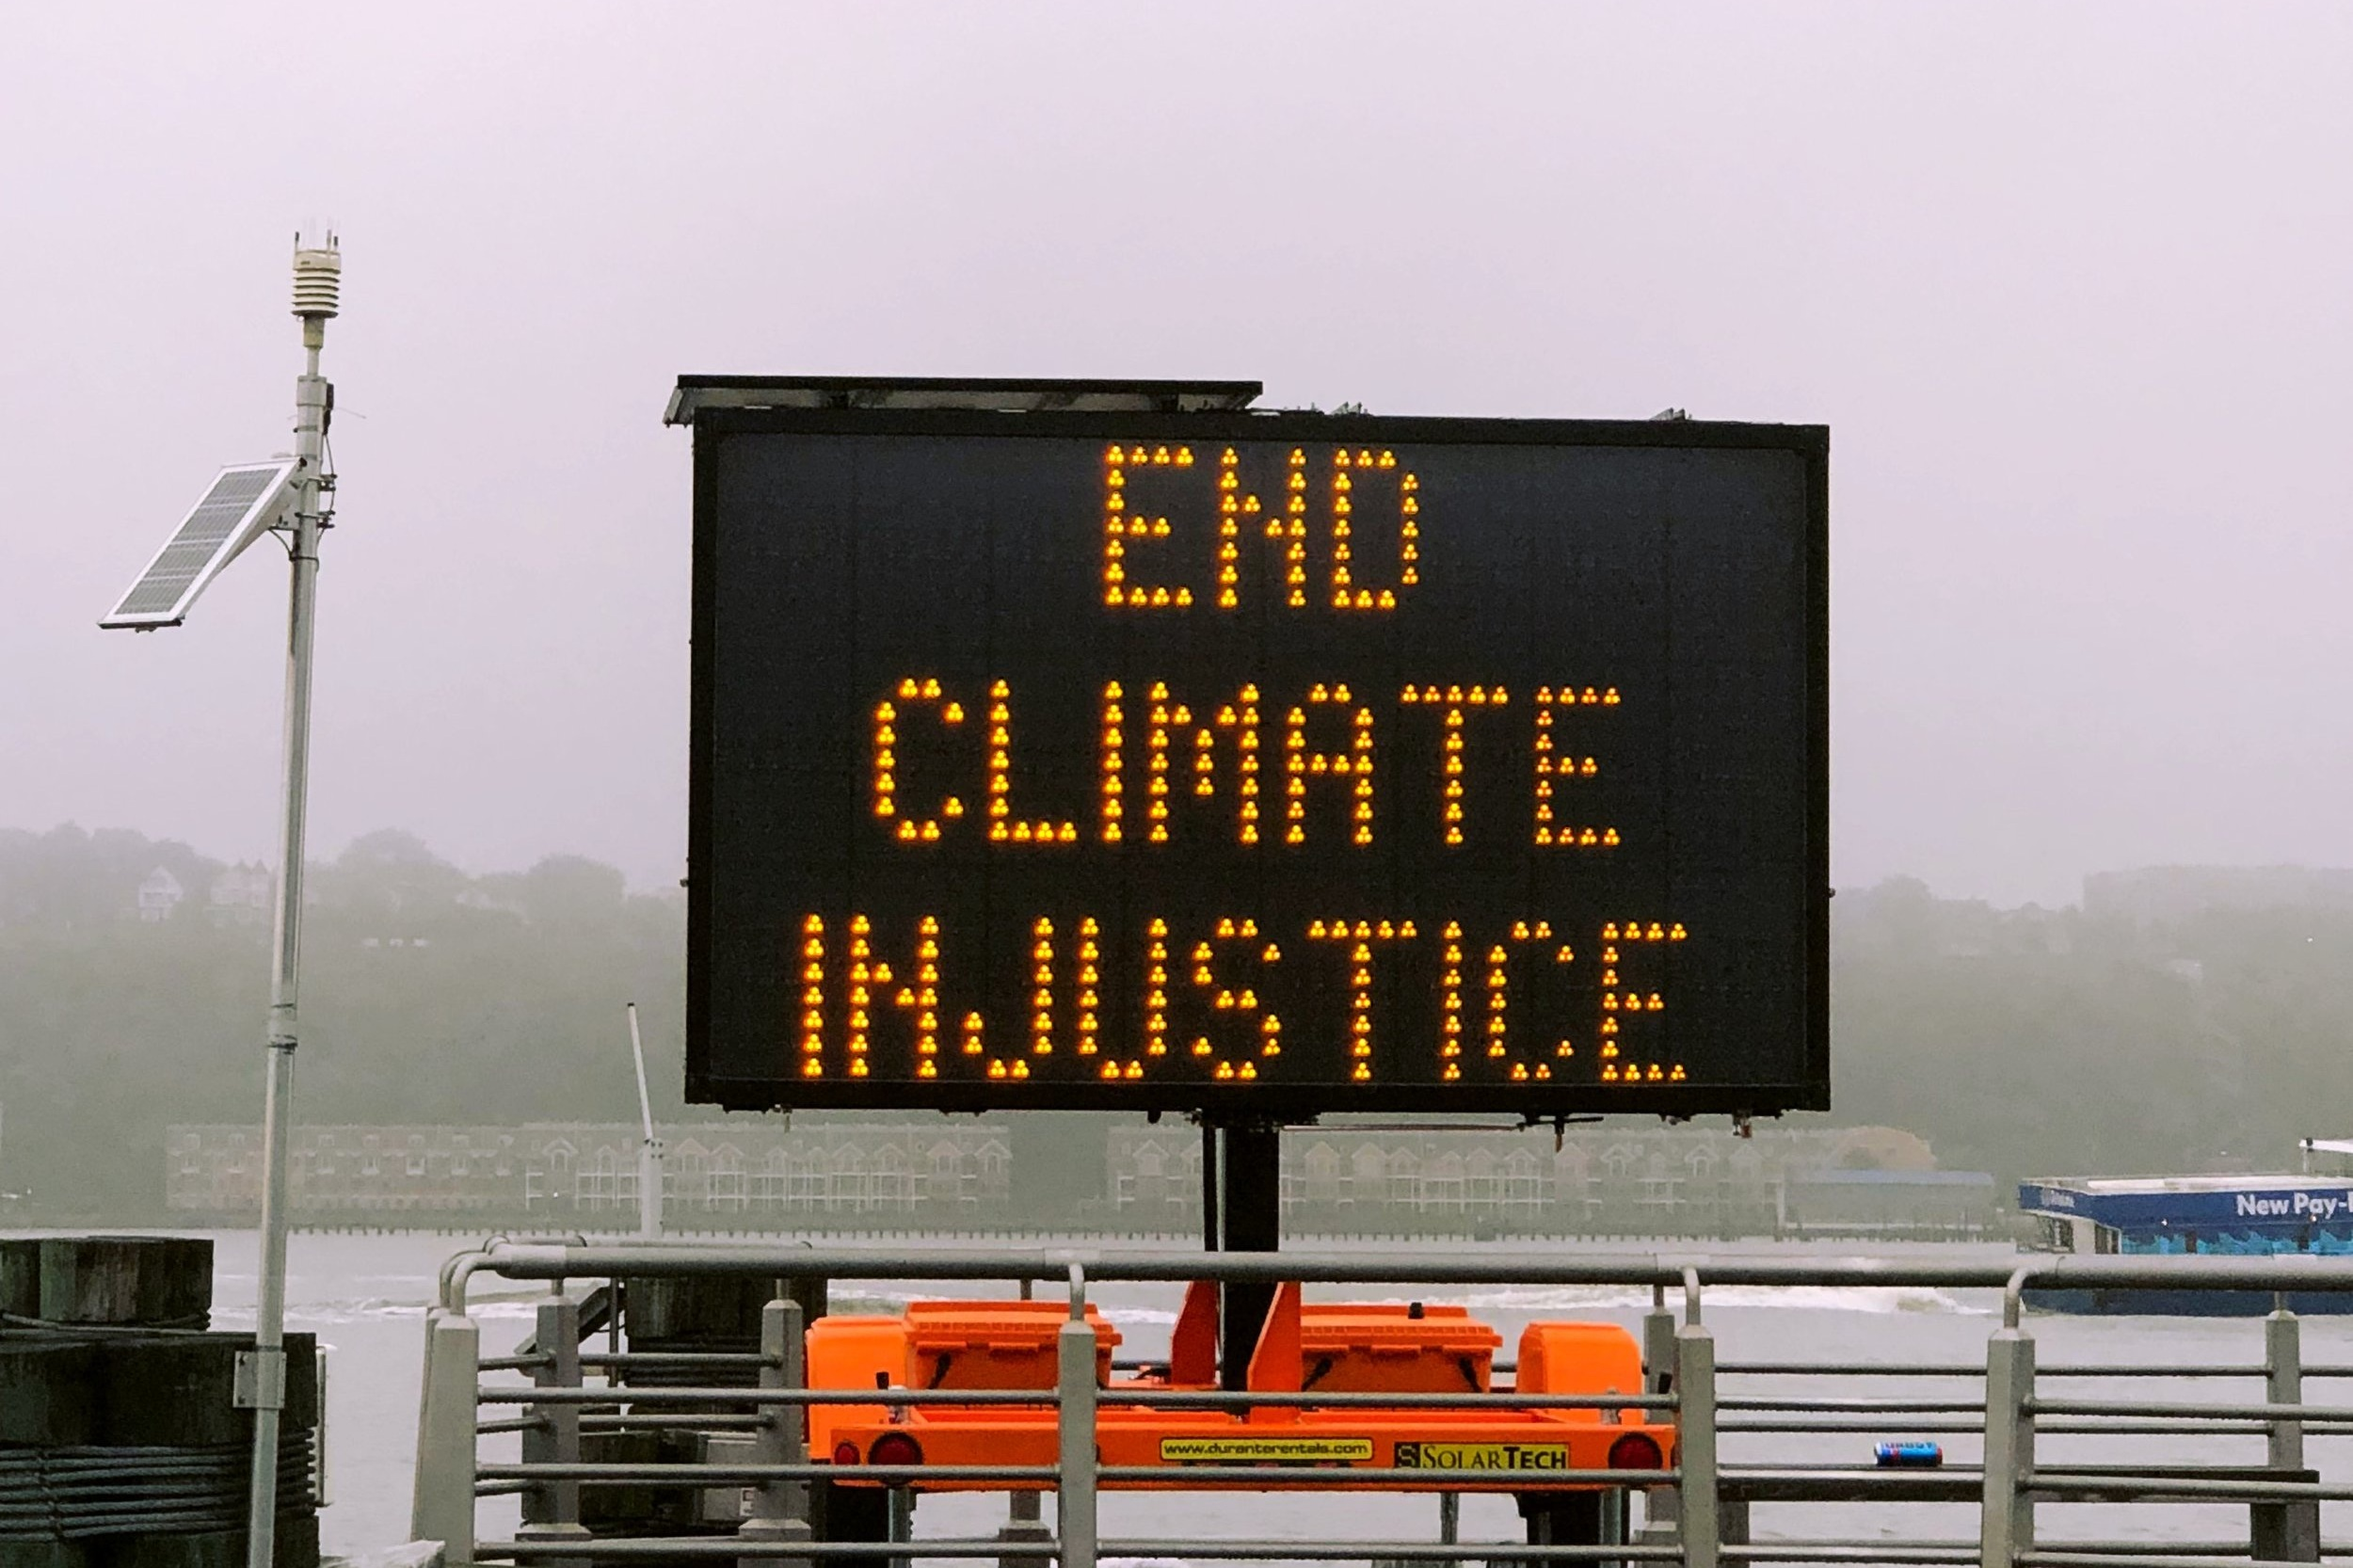 Climate extremes, regional impact & case for resilience -